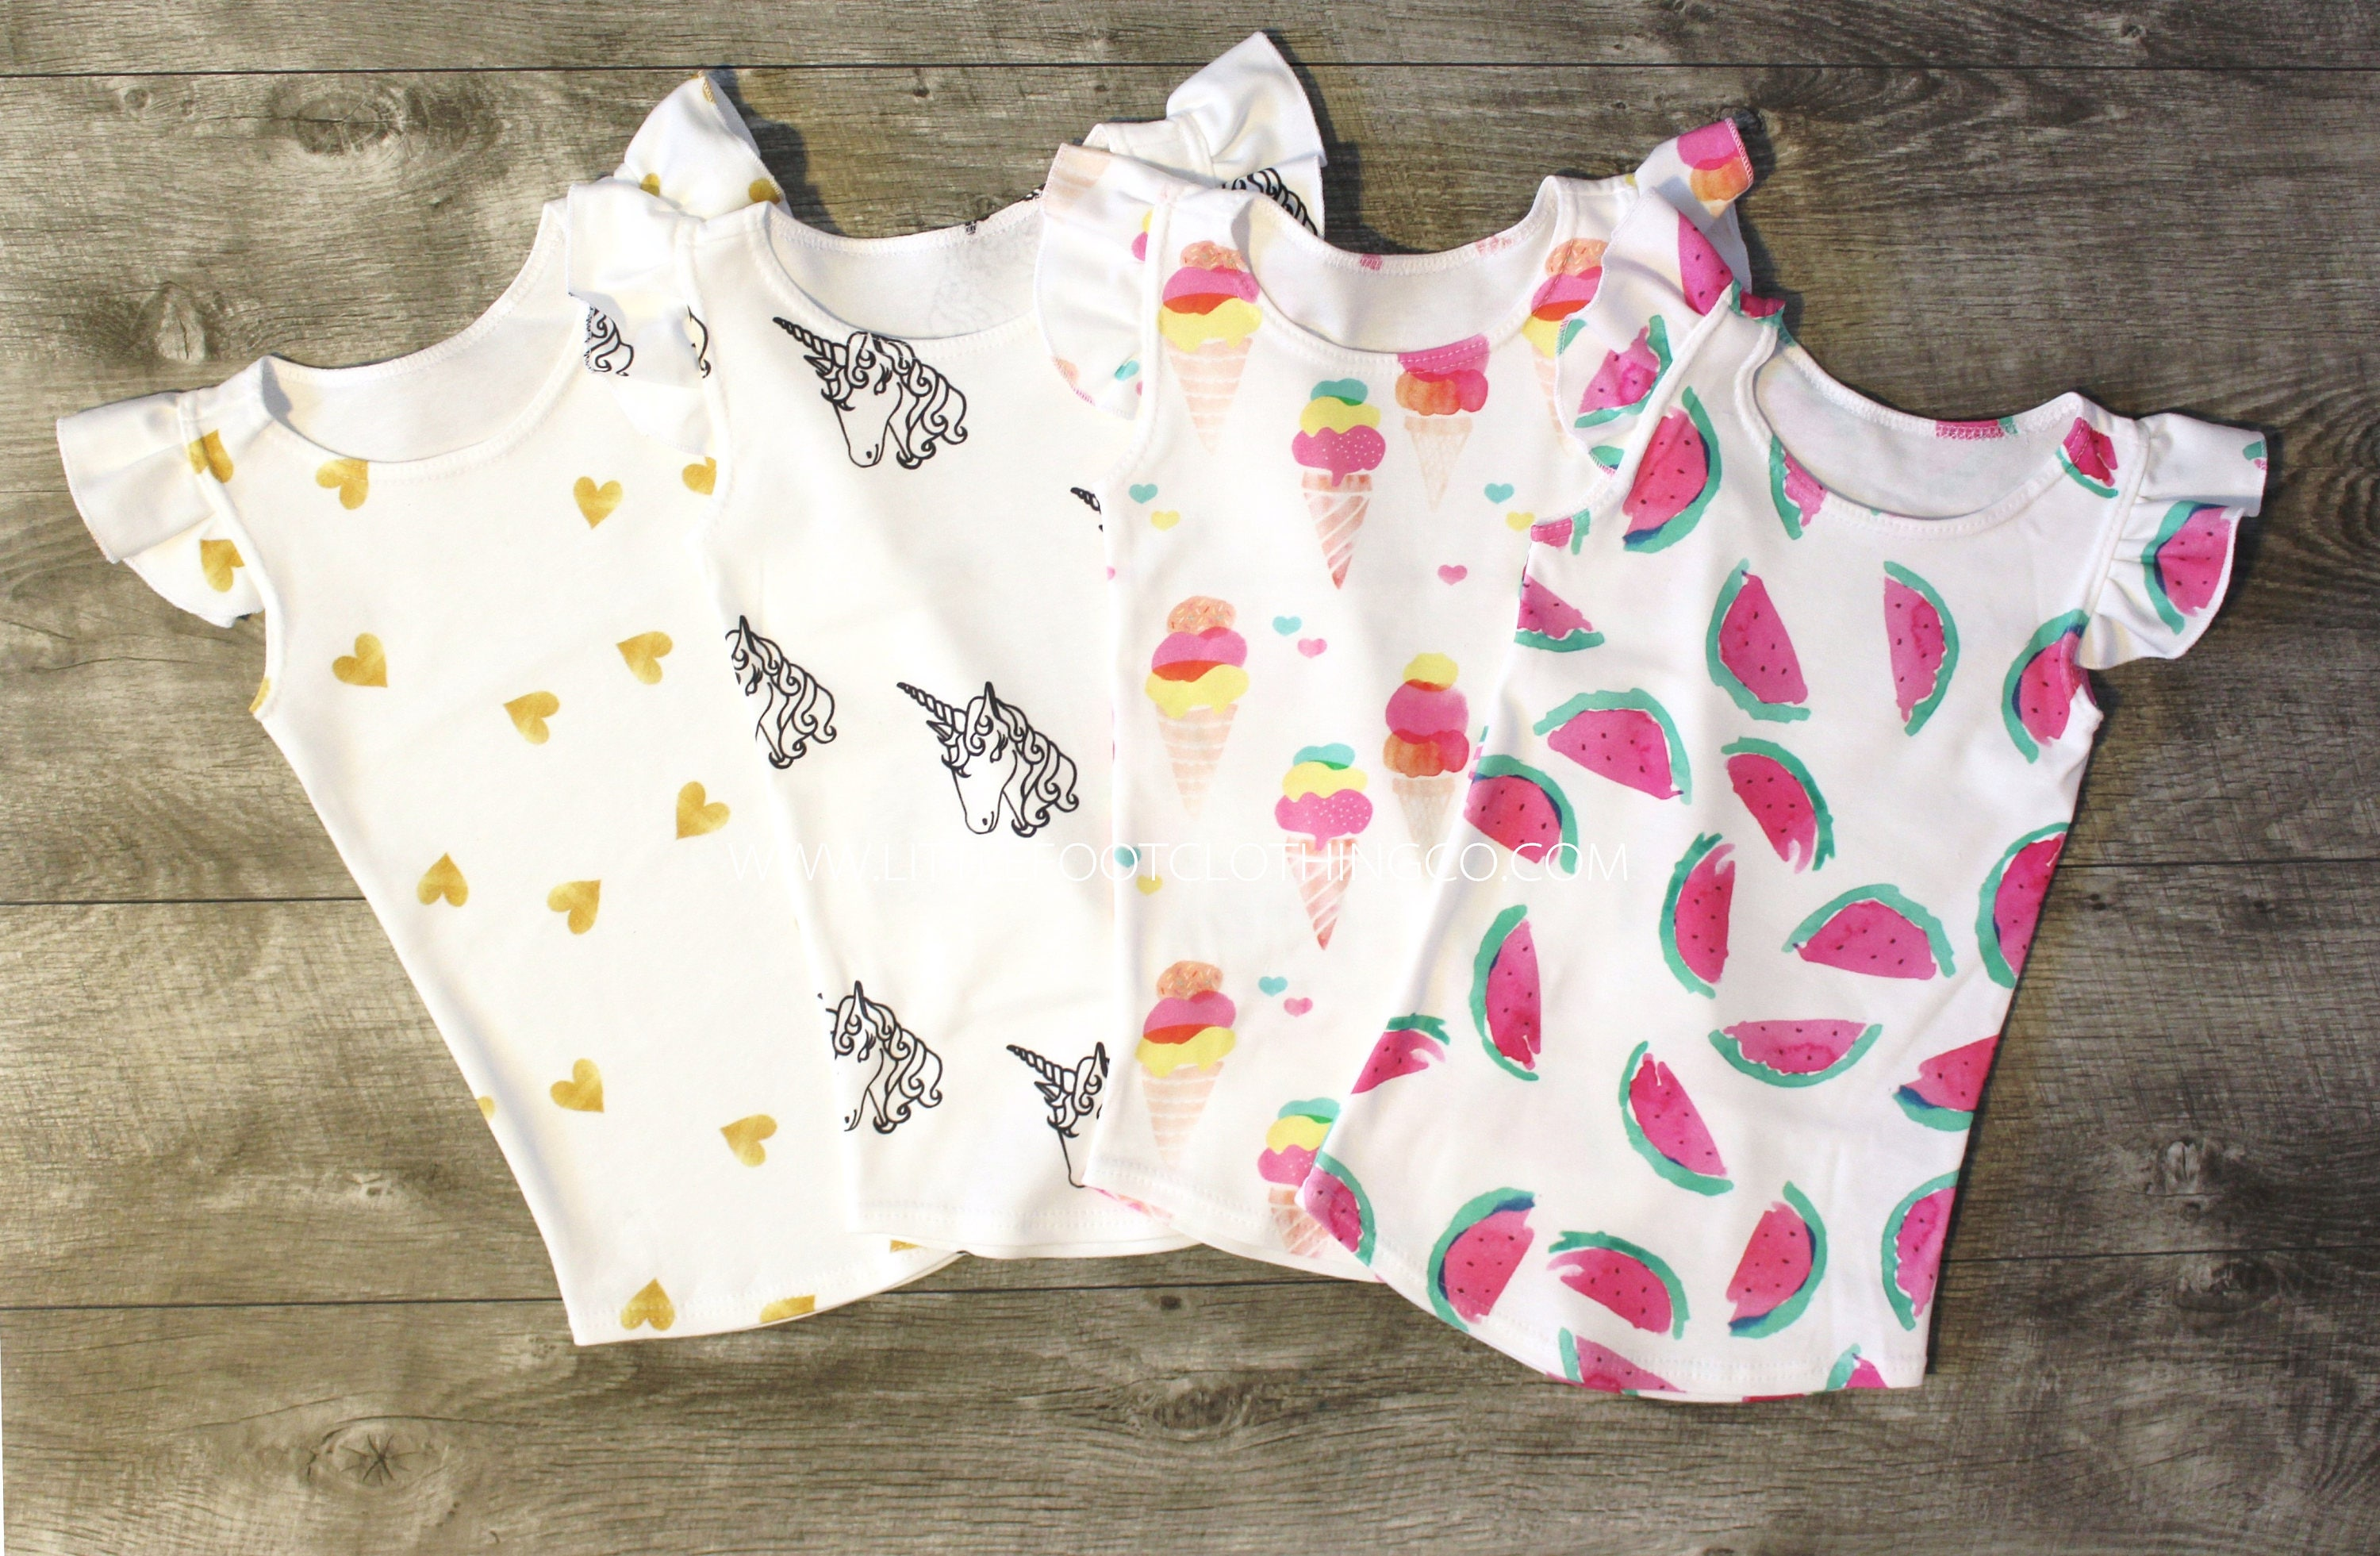 Organic Baby Clothes for Girls. Your little lady will look pretty and feel great in Organic Baby Girl Clothes from Kohl's! Our selection of Organic Baby Clothes for Girls is sourced responsibly and is durable, comfortable and stylish.